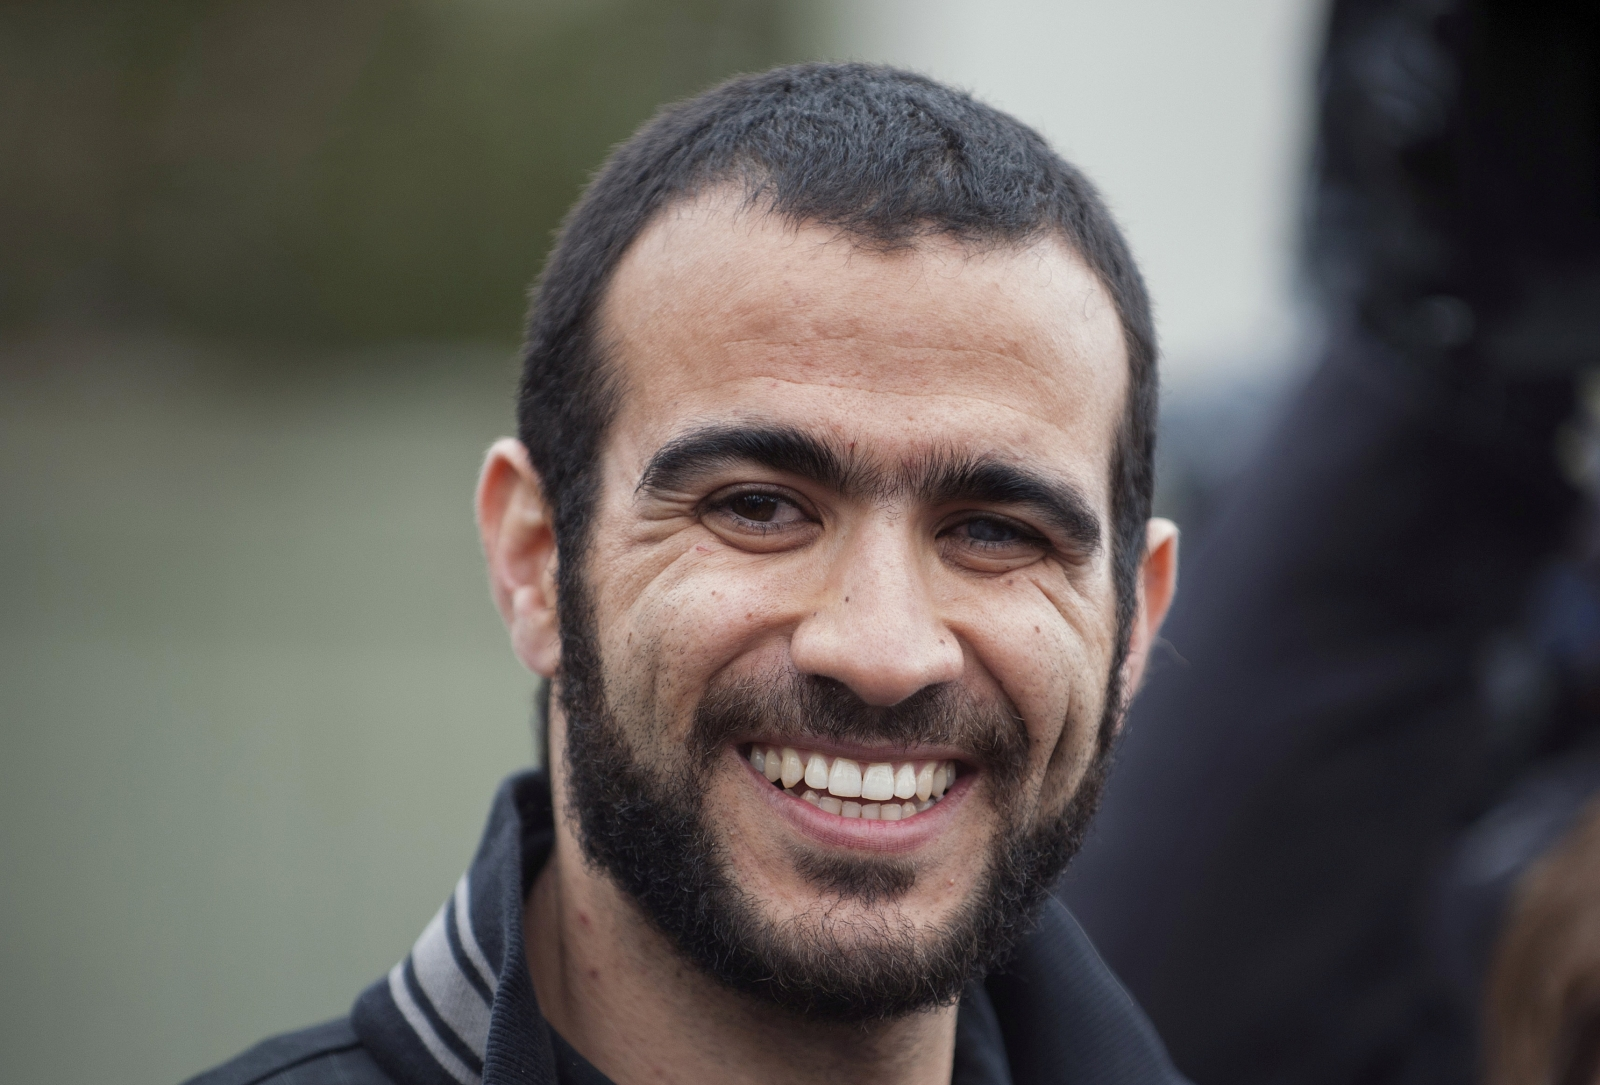 canadas-c10-5m-payout-to-ex-guantanamo-inmate-omar-khadr-causes-controversy